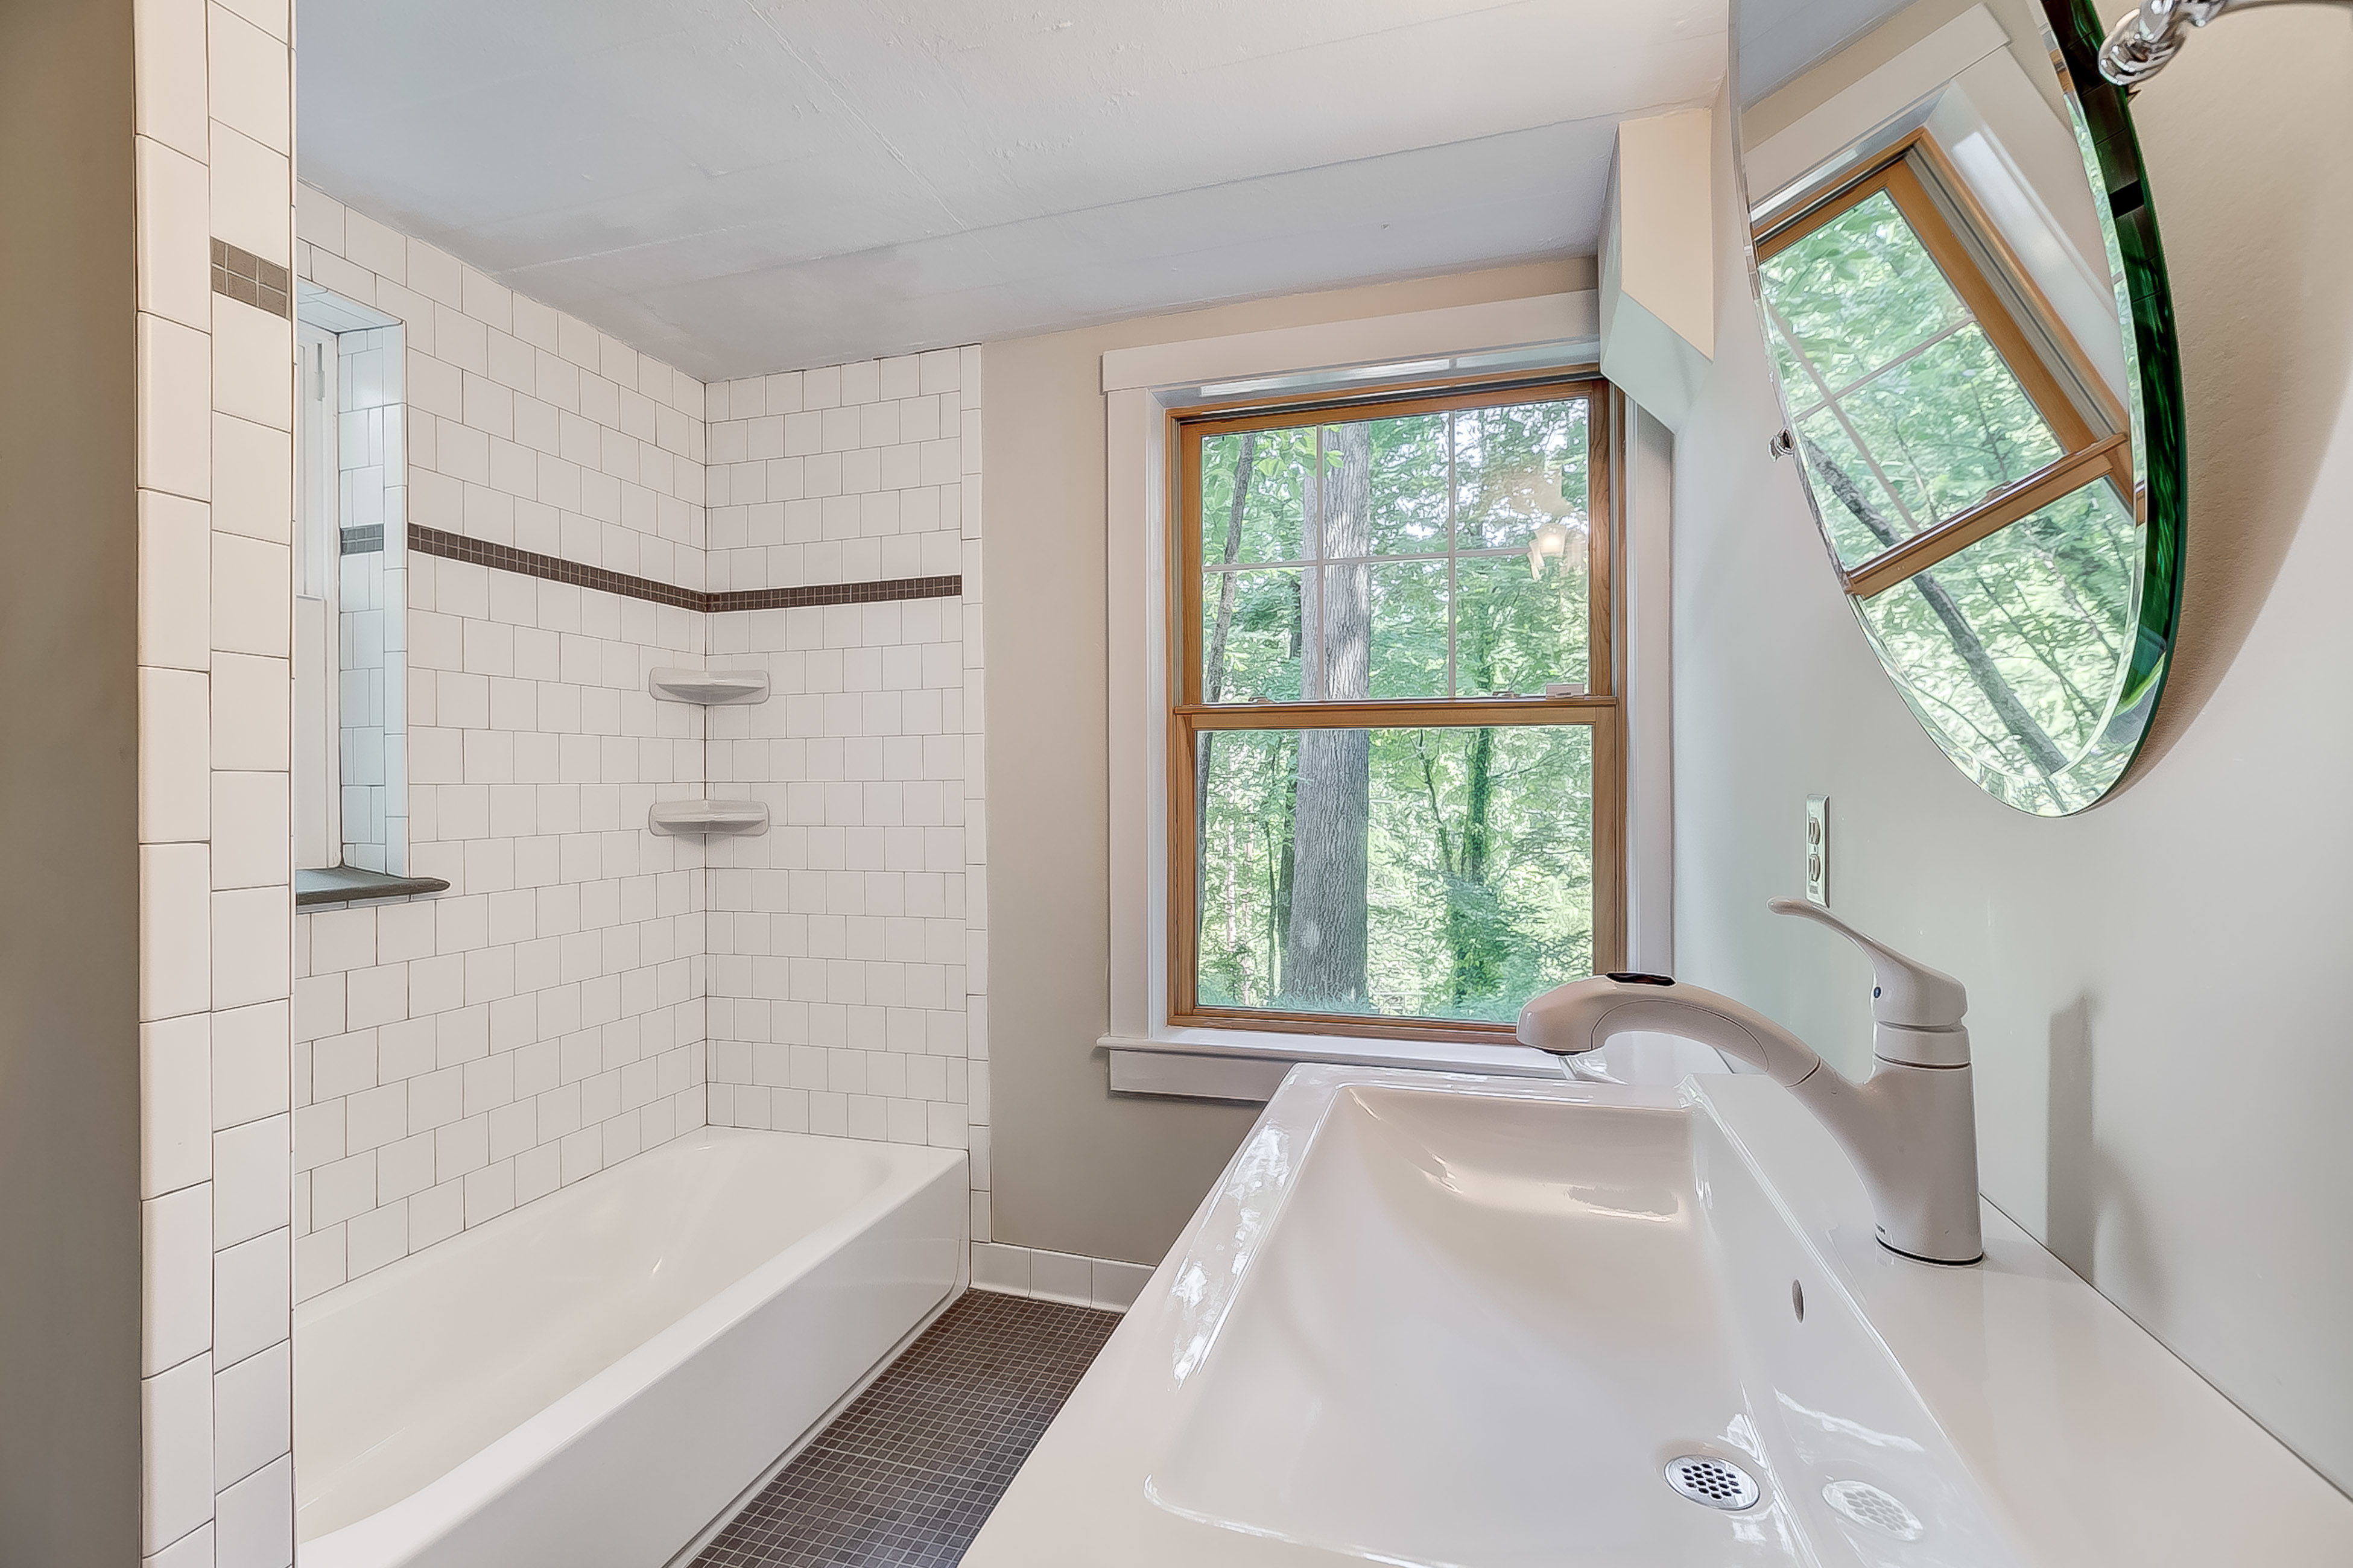 totally get that there is a separate entance + full bath with this 5th bedroom